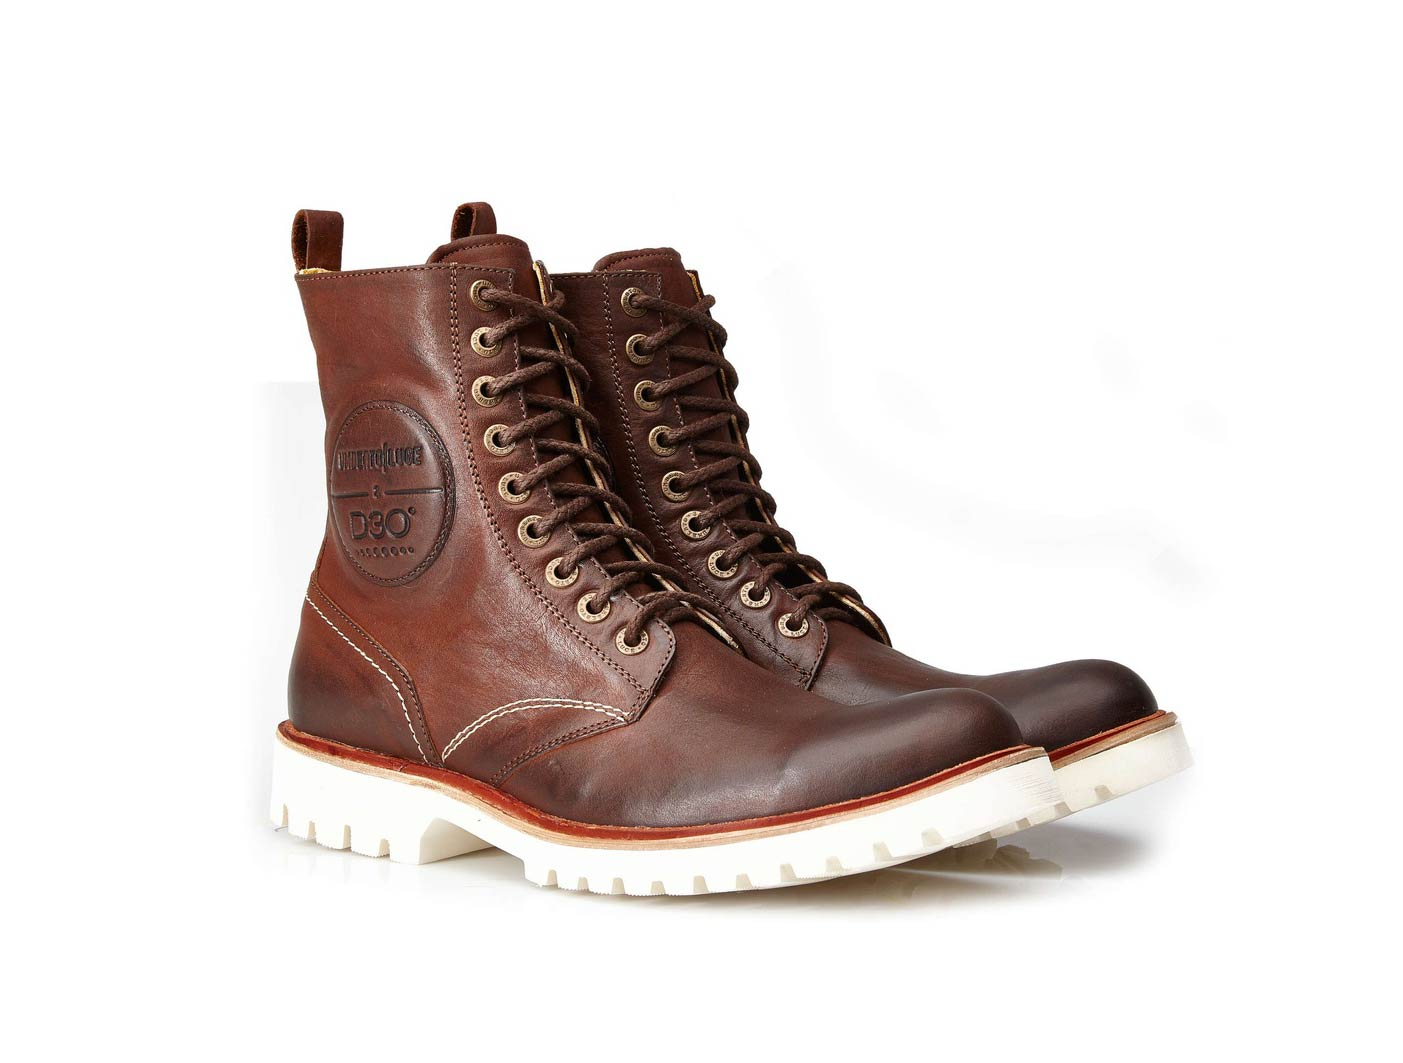 McQueen Moto Boots by Umberto Luce 5